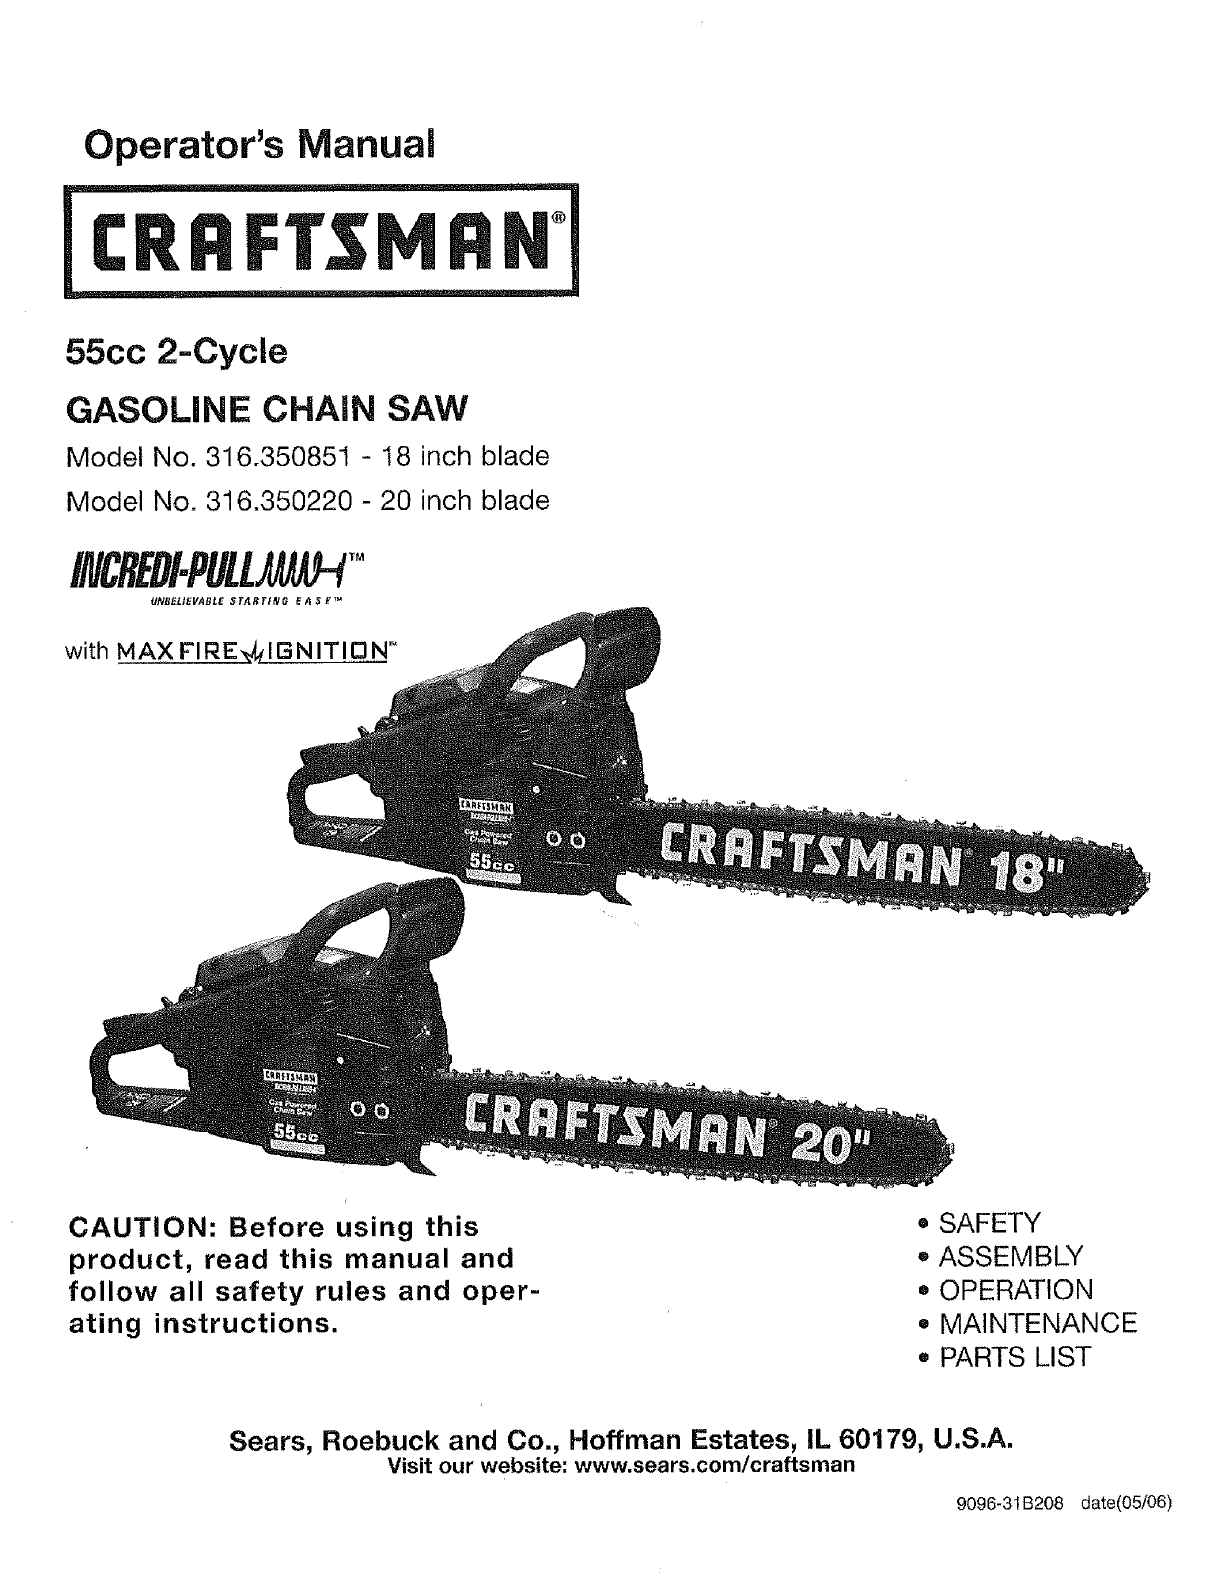 Craftsman 316350220 User Manual Chain Saw Manuals And